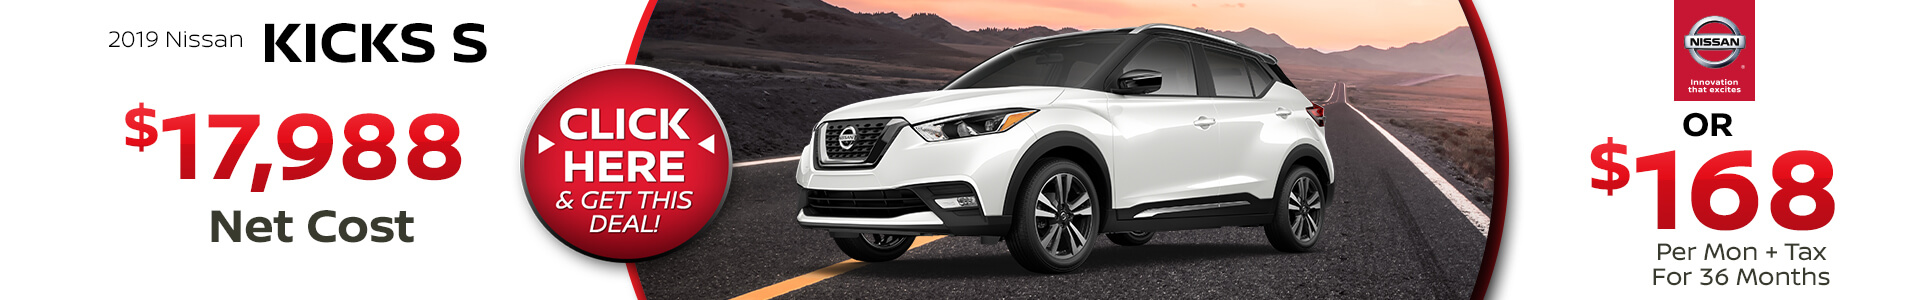 2019 Nissan Kicks Purchase for $$17,988